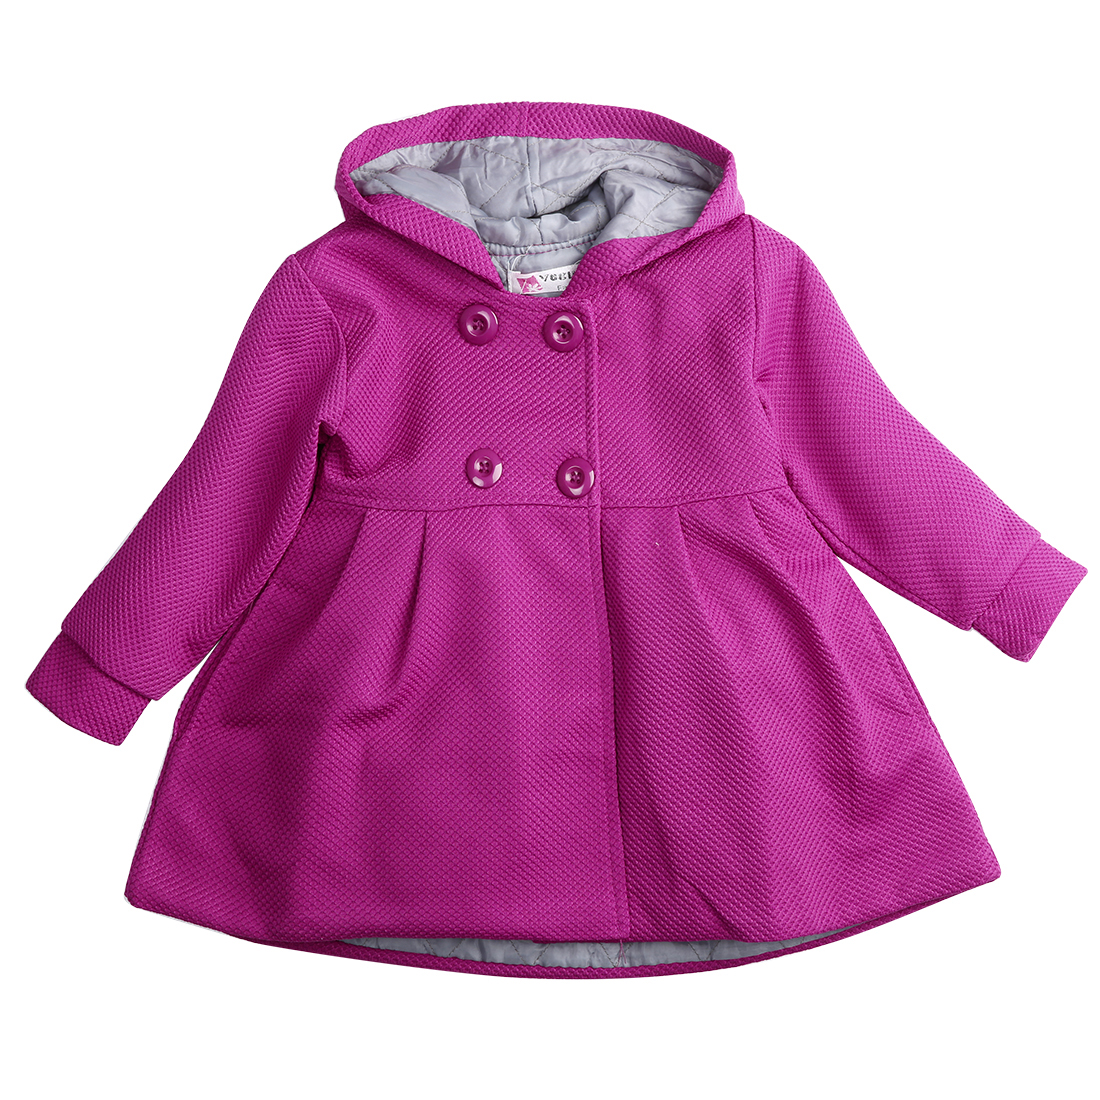 Compare Prices on Girls Winter Coats Baby- Online Shopping/Buy Low ...